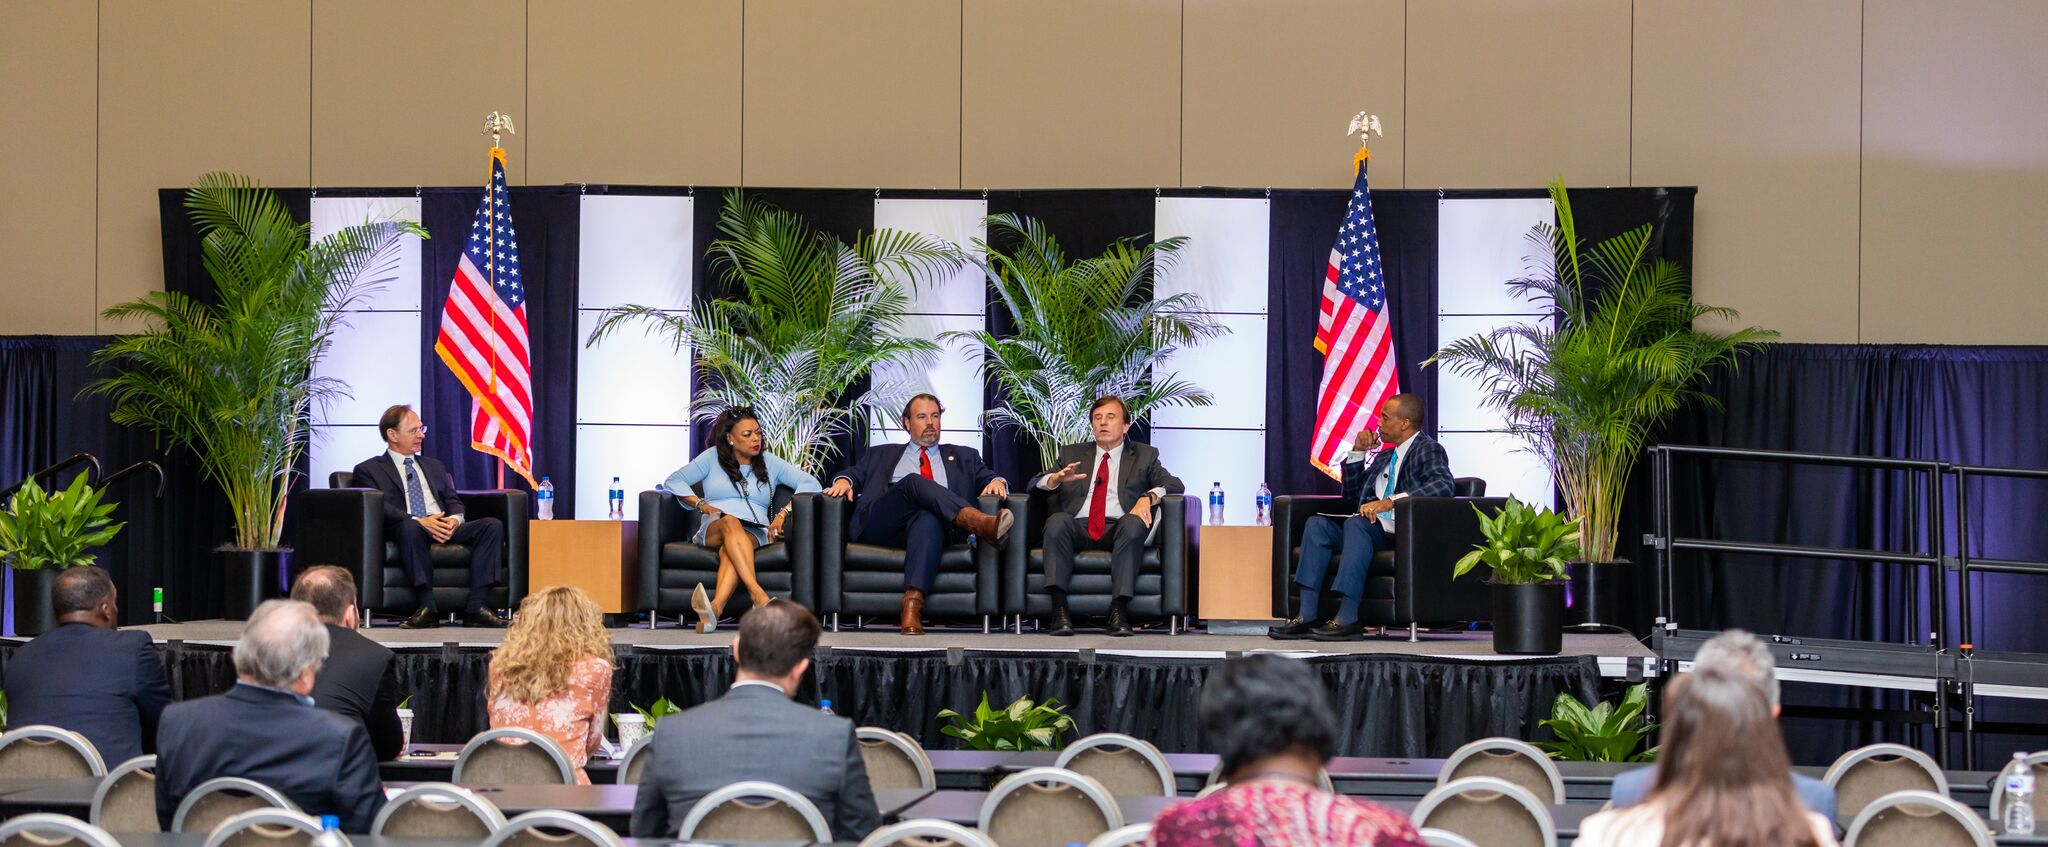 Executive Director Turner moderates a panel on Opportunity Zones in the Southeast region